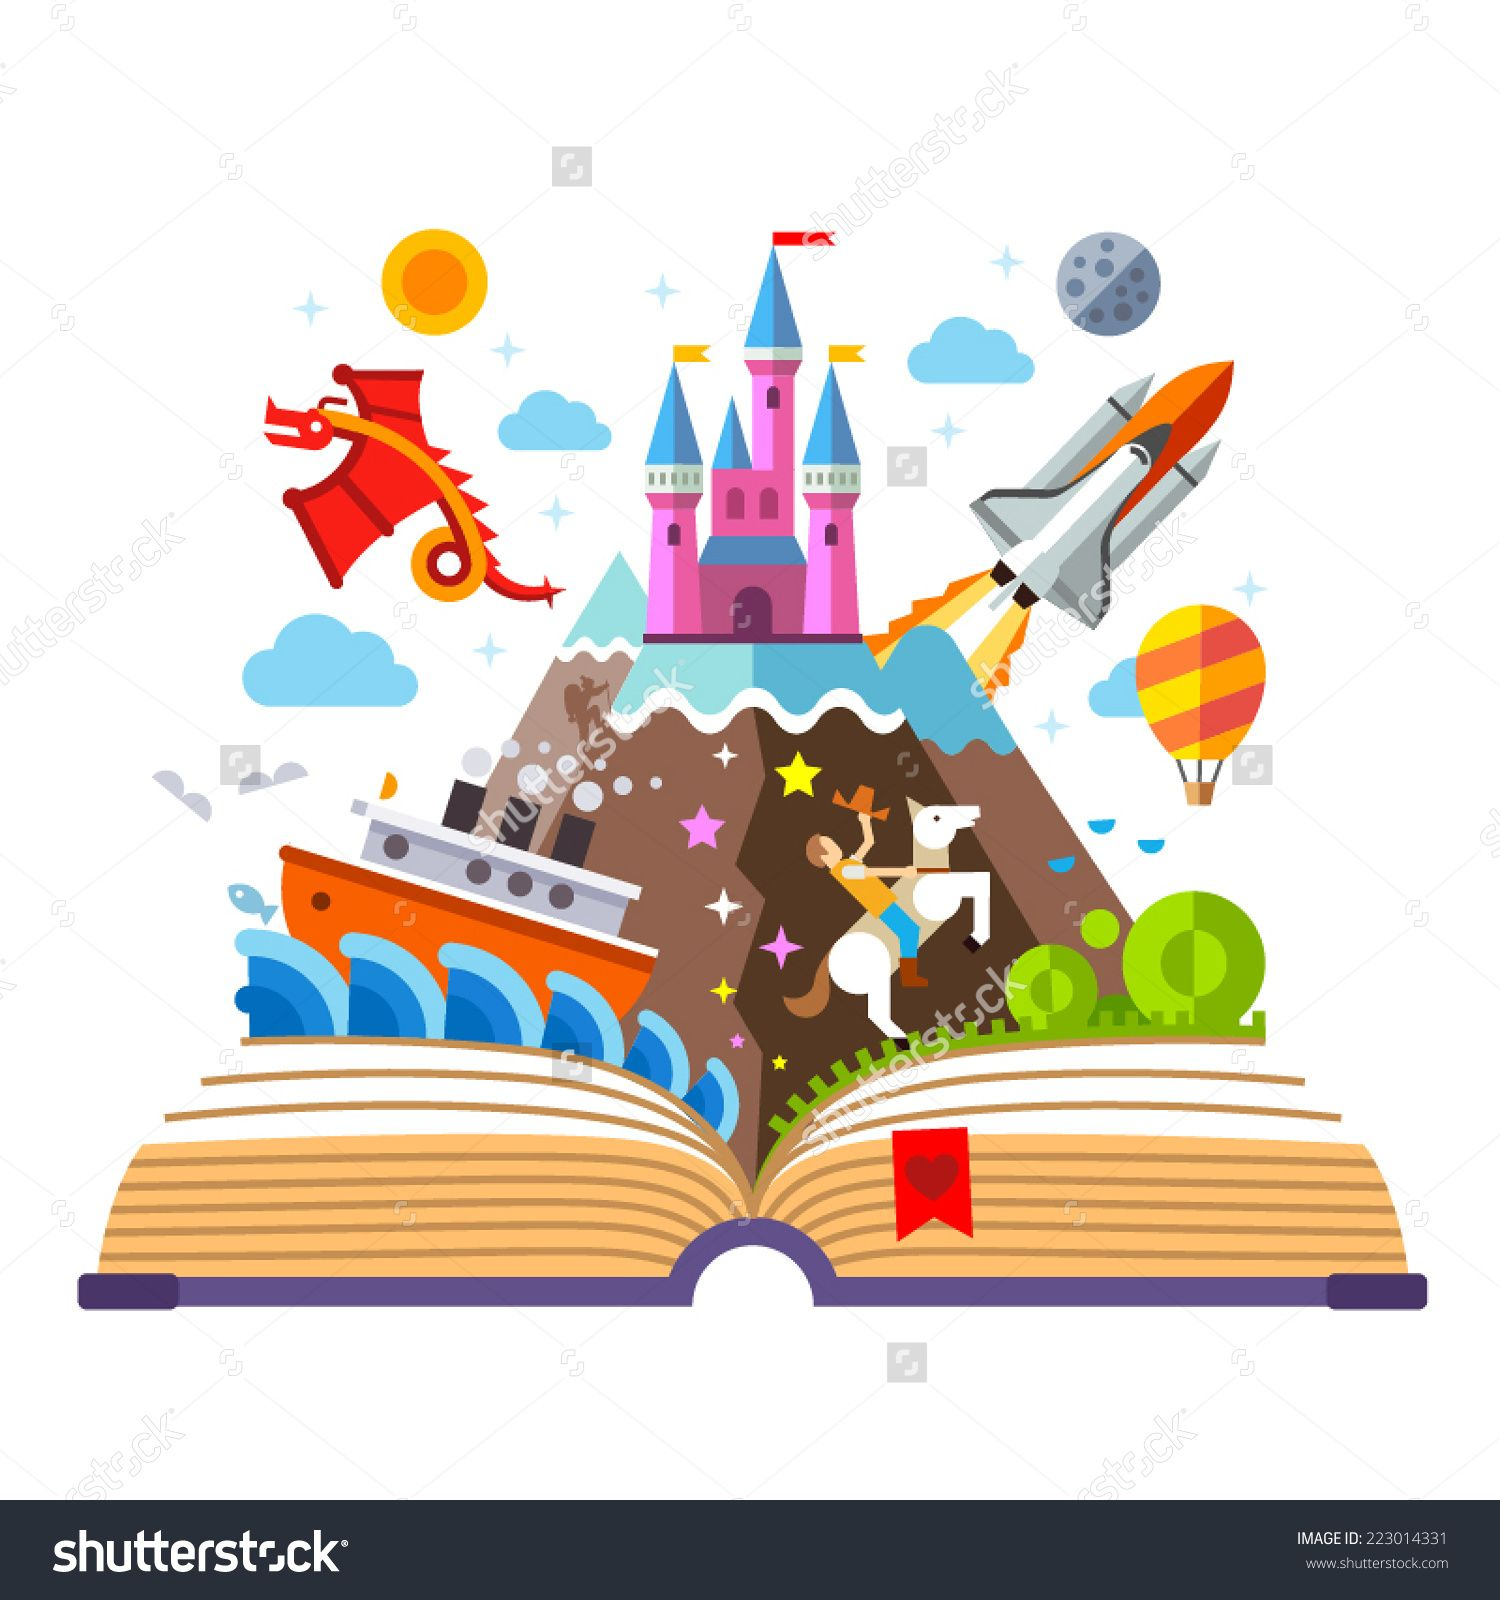 water color open book with a castle - Google Search | Read ...